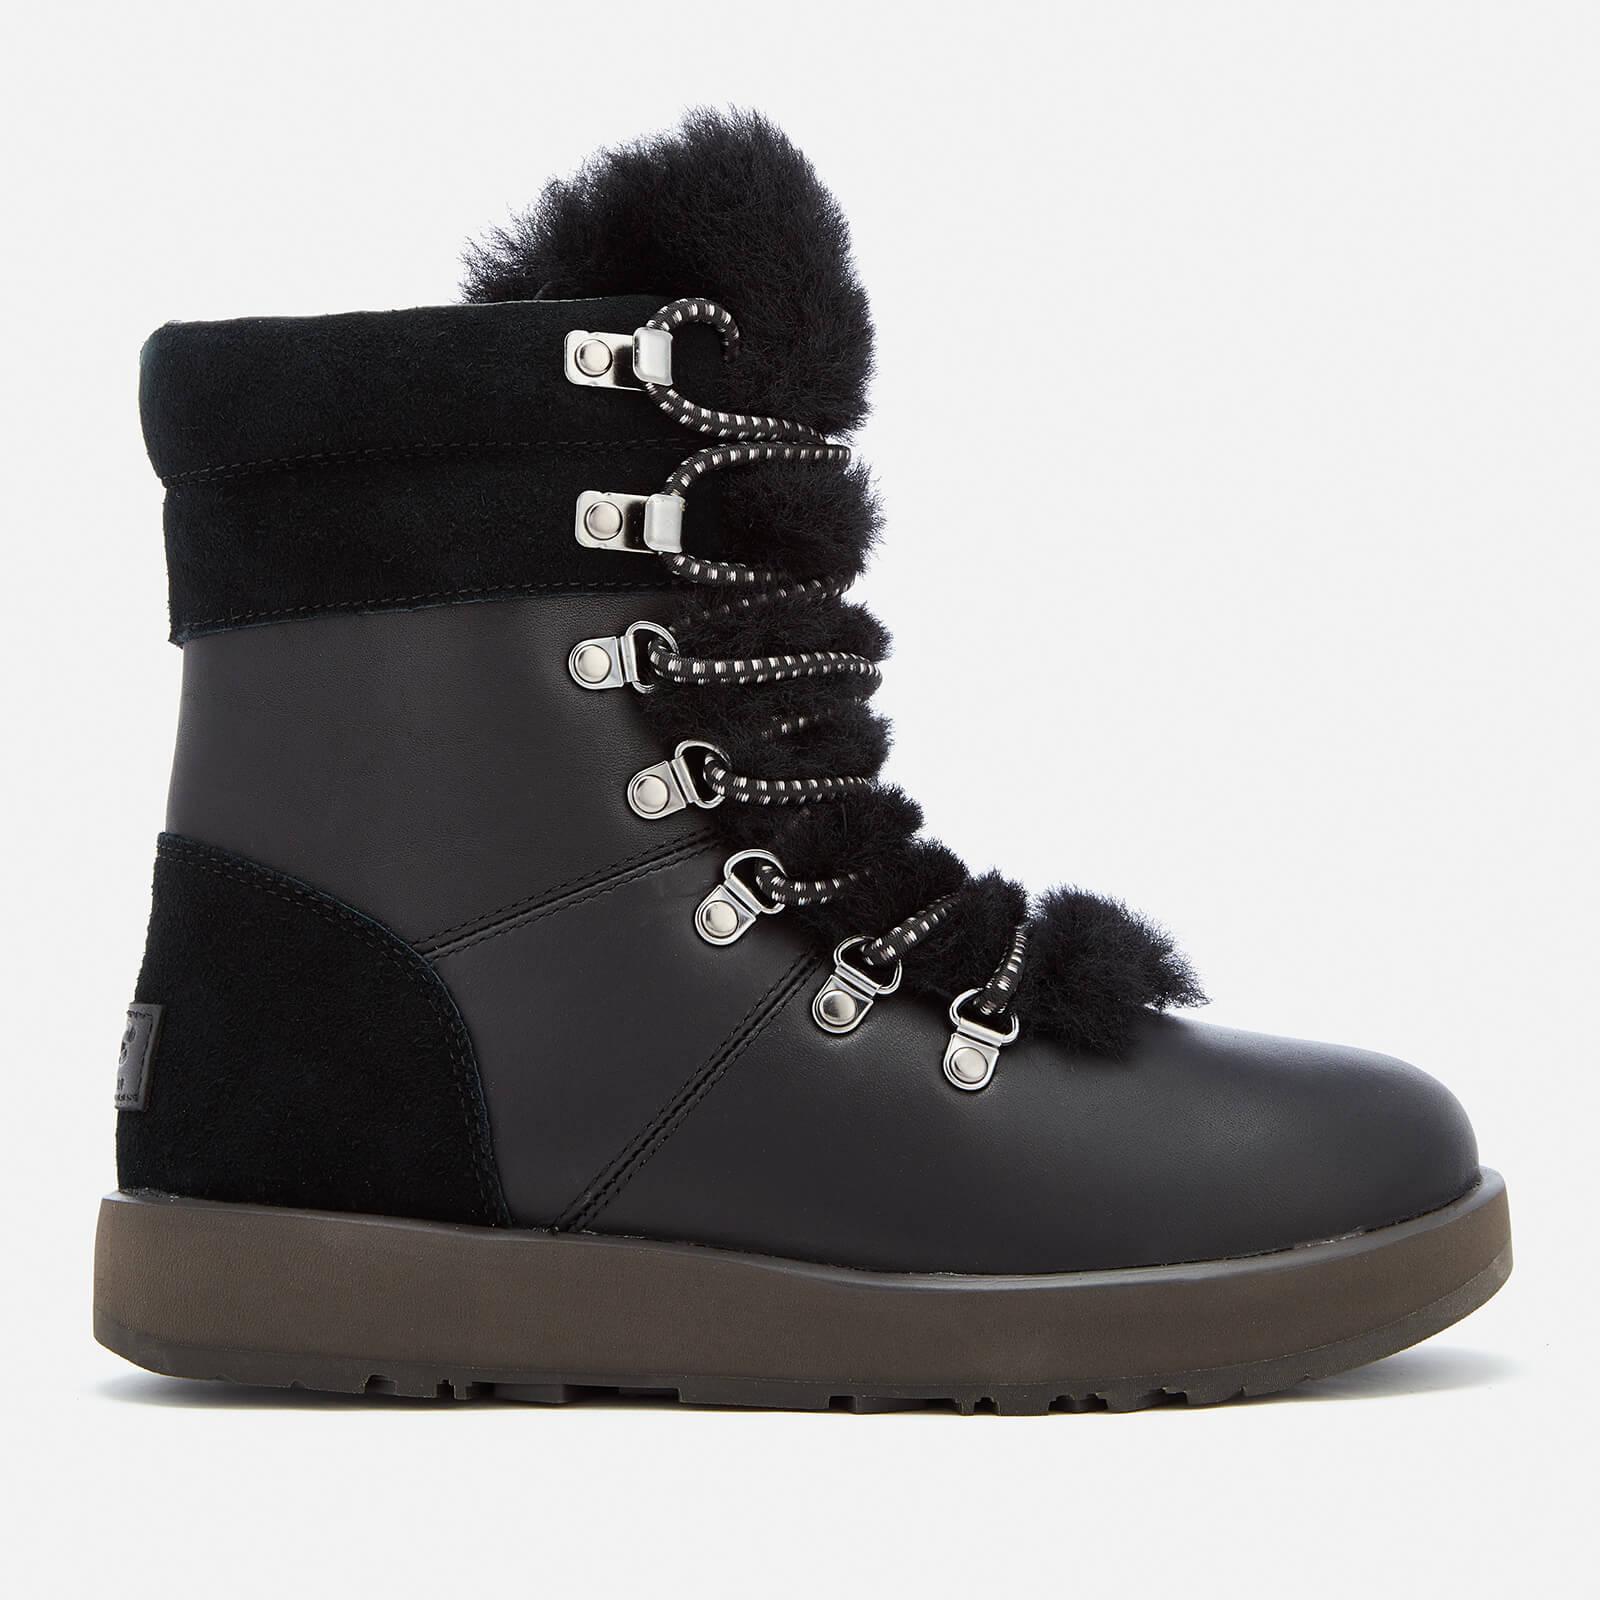 c8b38a607d9 UGG Women's Viki Waterproof Leather Lace Up Boots - Black